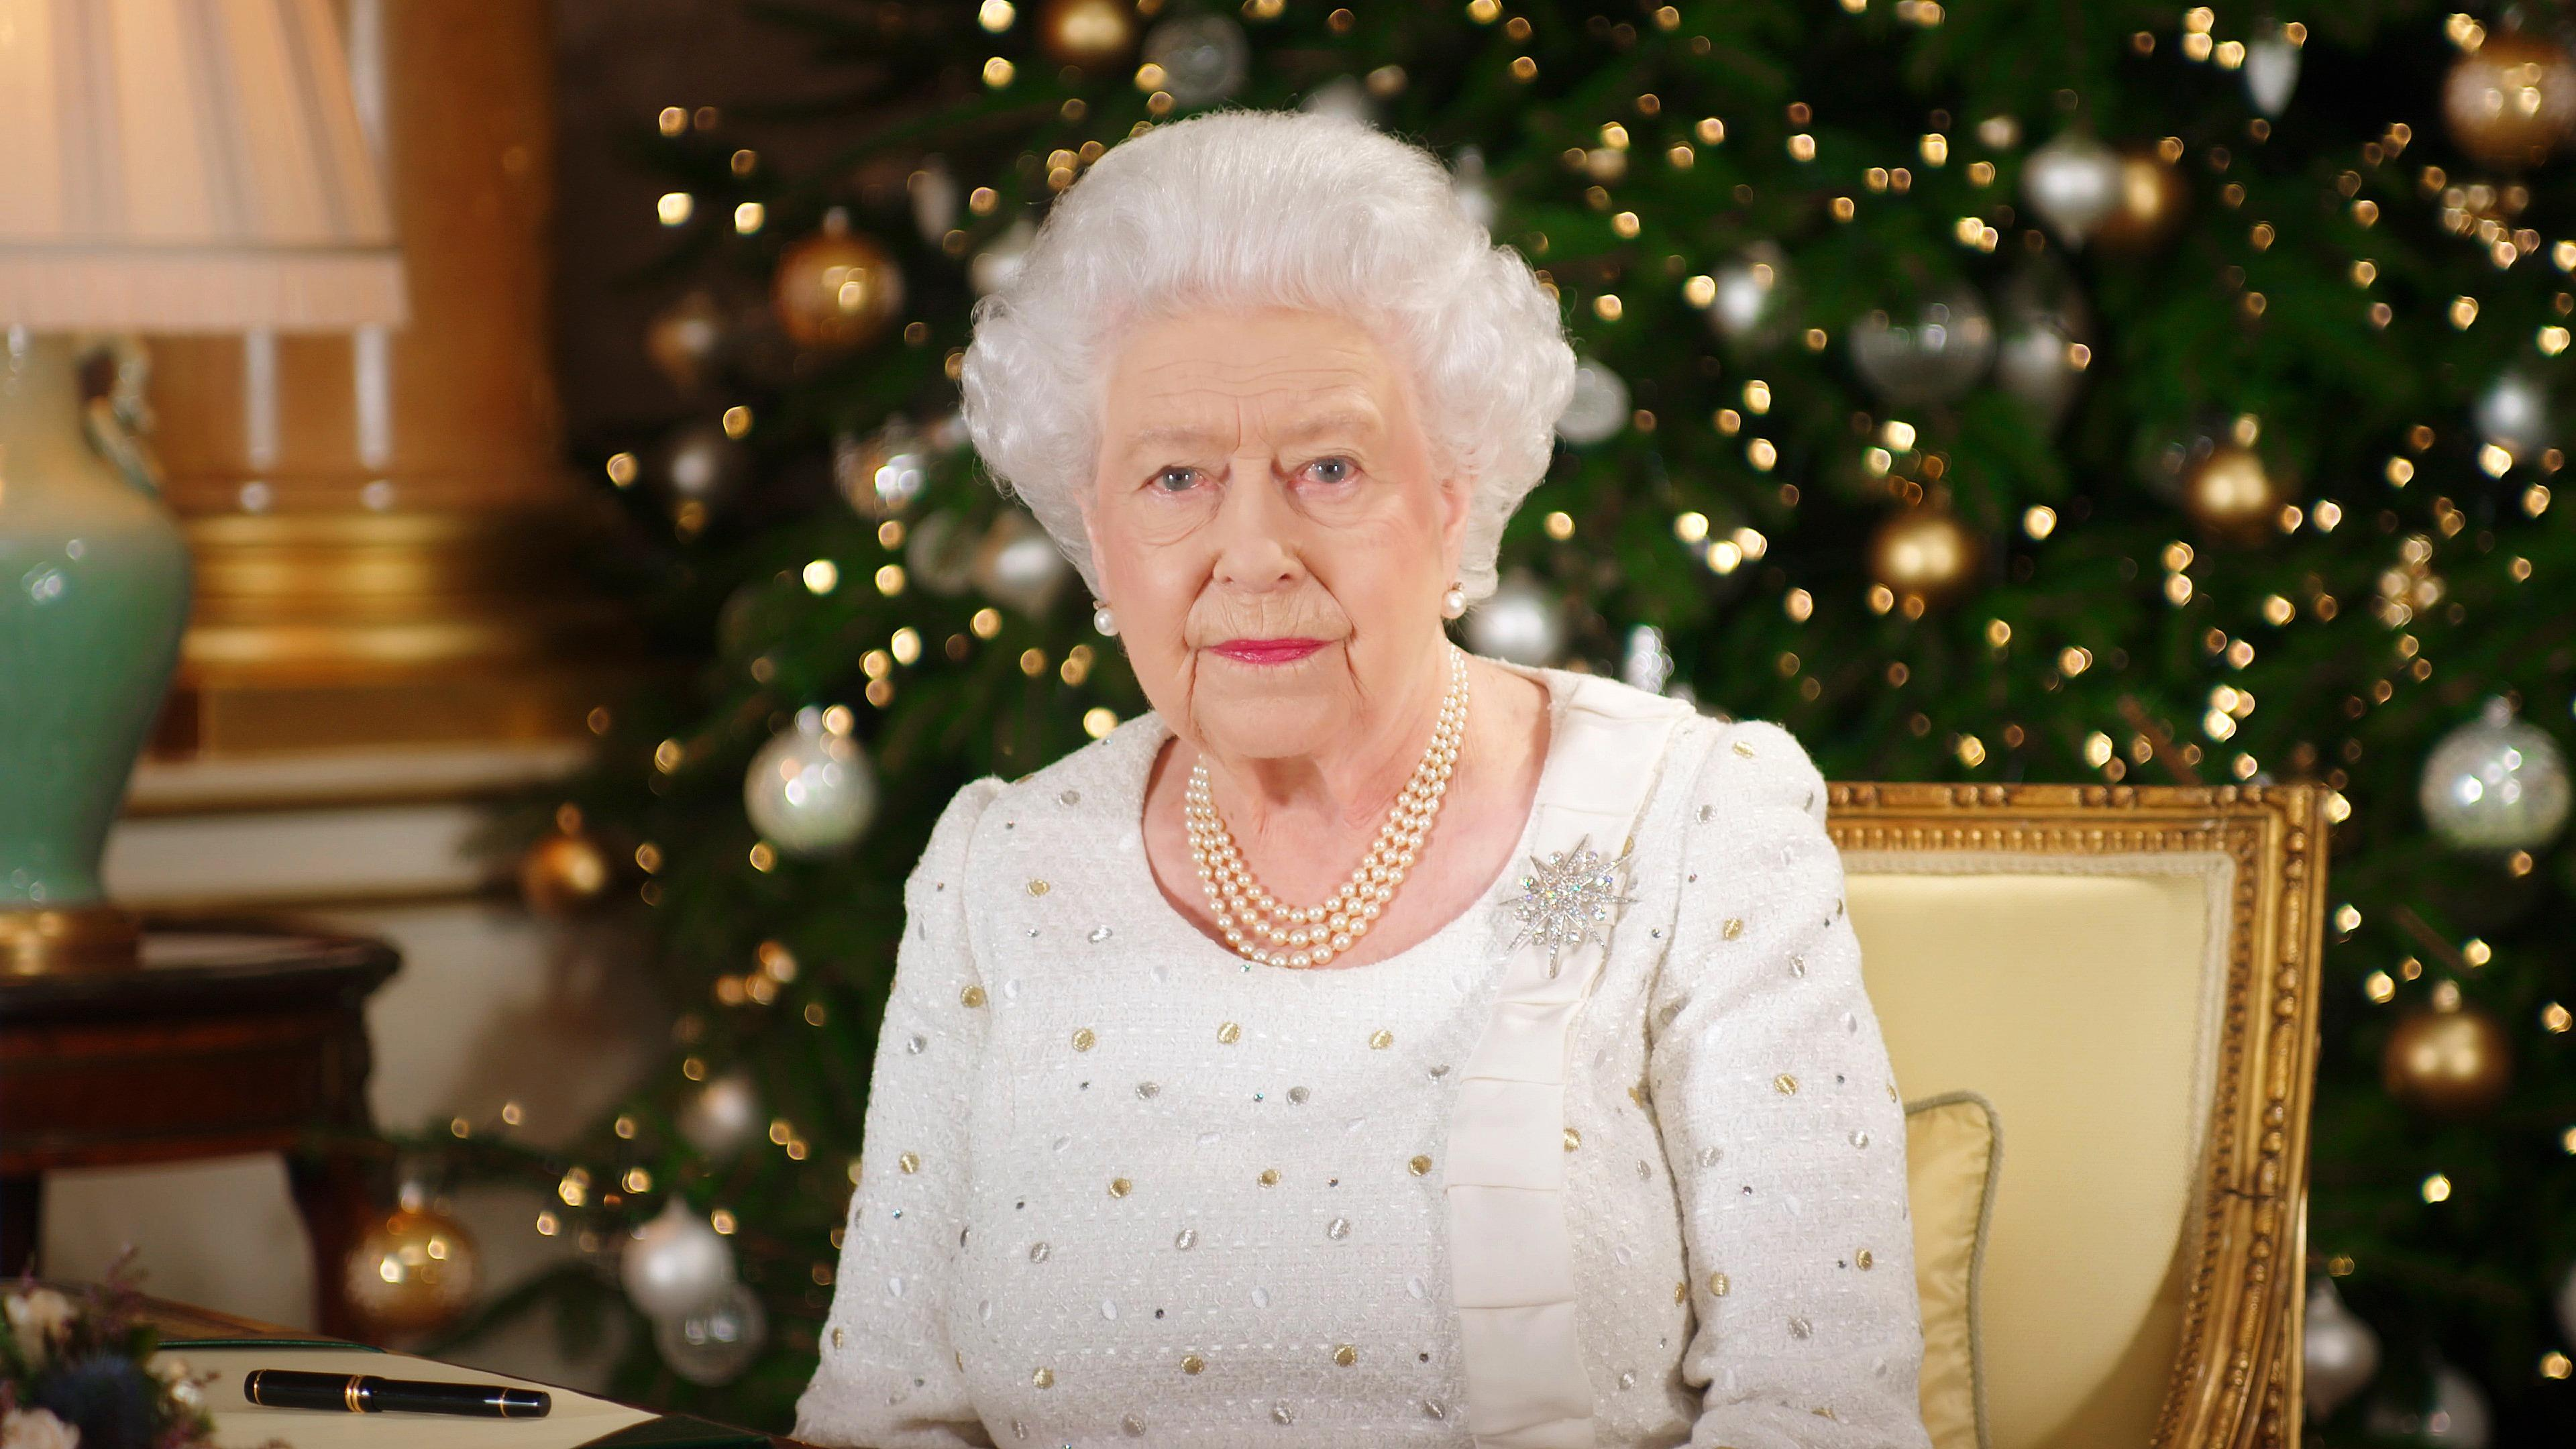 Queen Elizabeth II Will Celebrate Her 2 Birthdays This Year